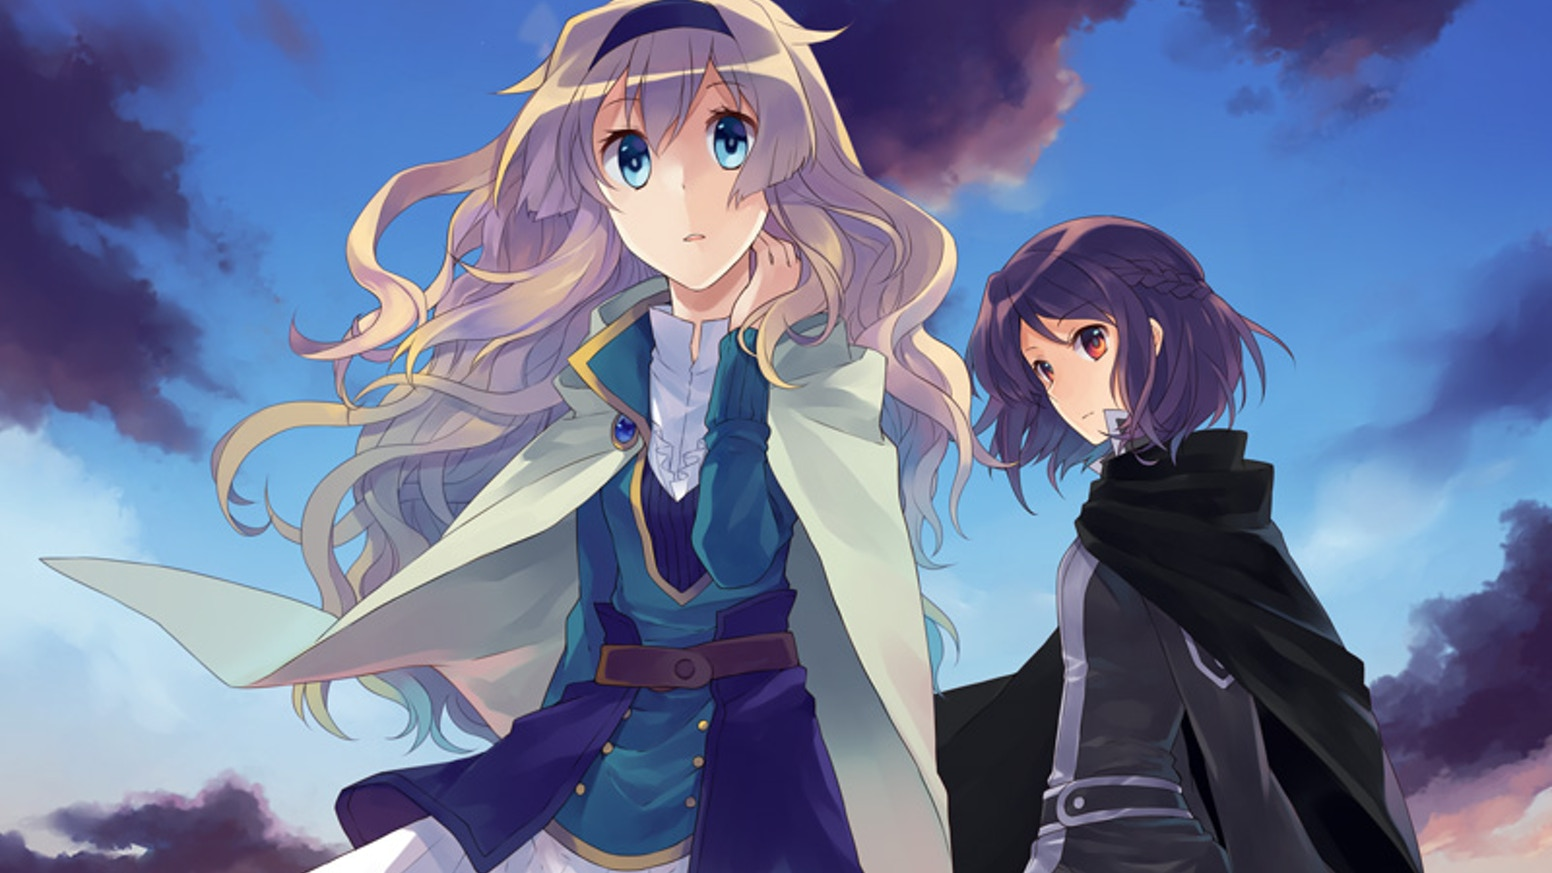 A visual novel by ALICE IN DISSONANCE combining western storytelling with eastern art. Please join us on the journey.